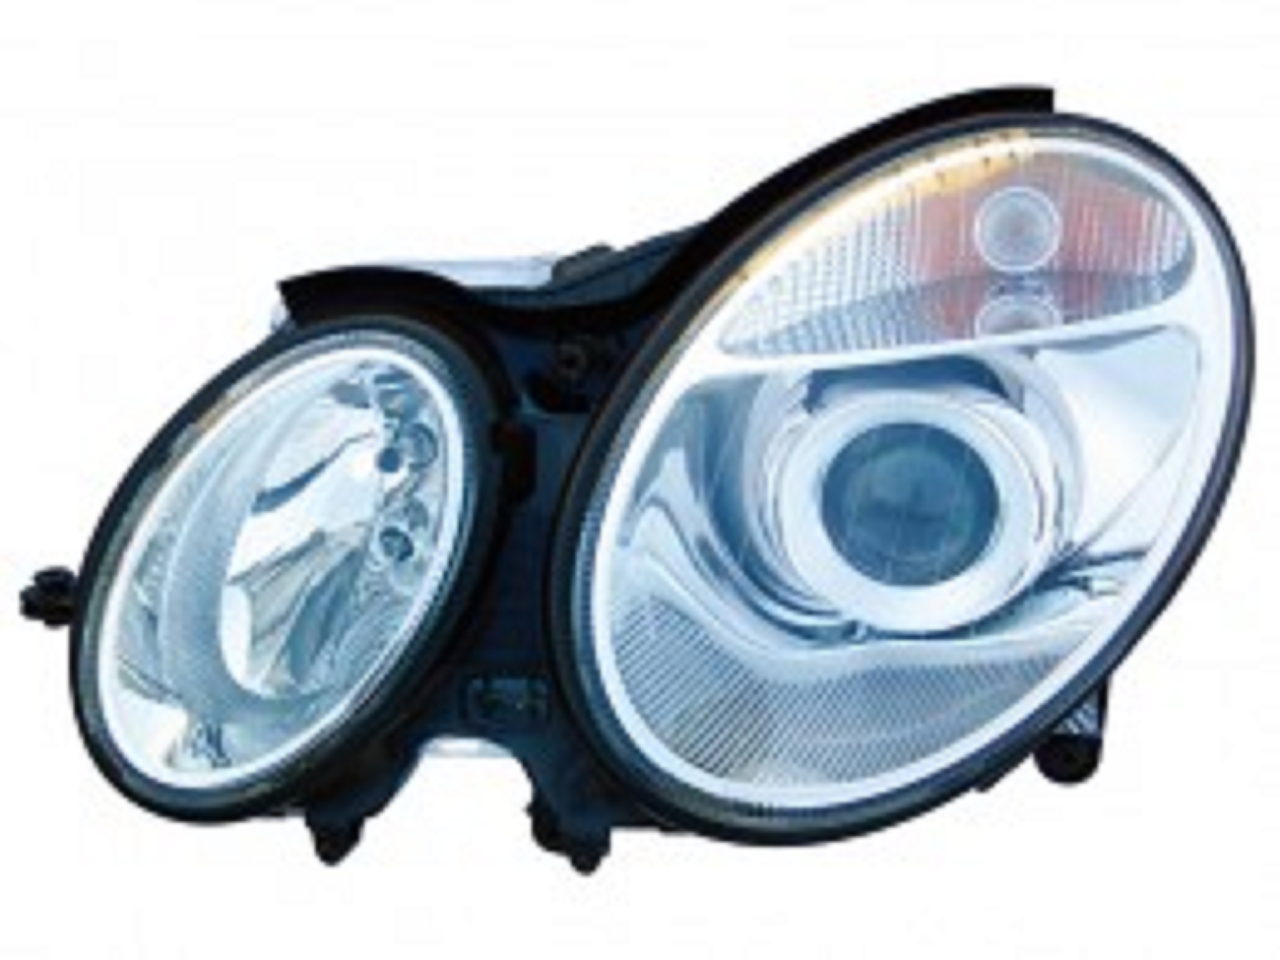 Mercedes Benz E class W211 sedan & wagon 2003 2004 2005 2006 left driver headlight